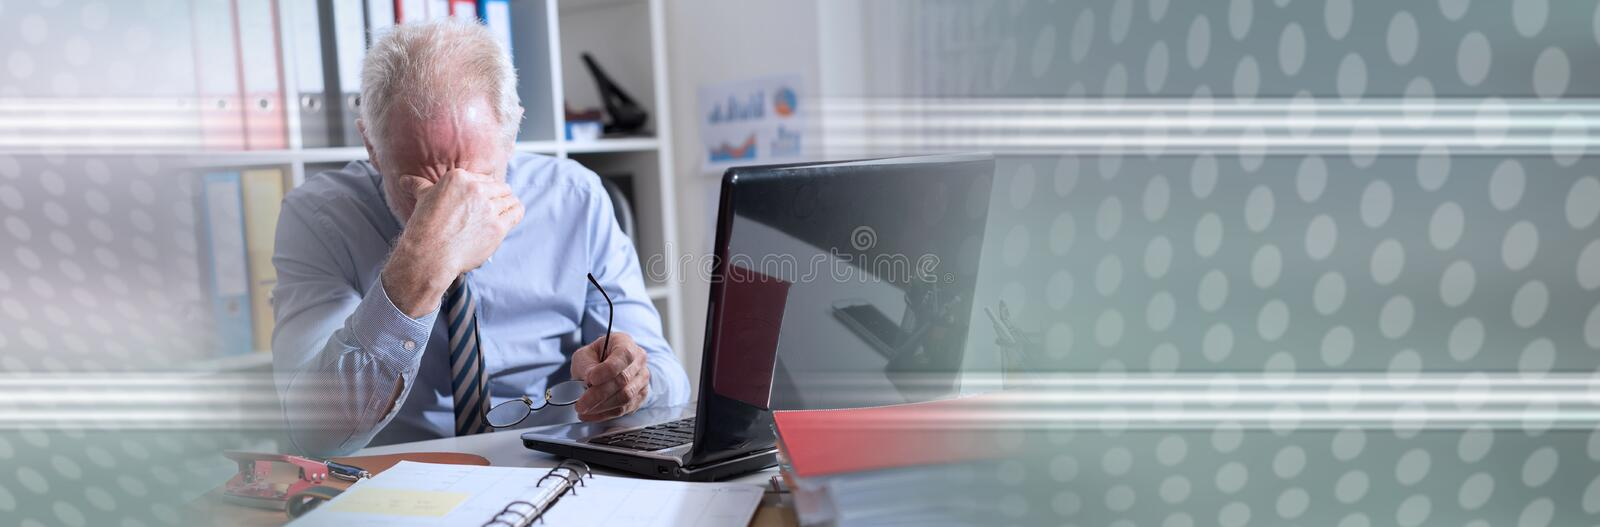 Tired businessman with headache; panoramic banner stock images